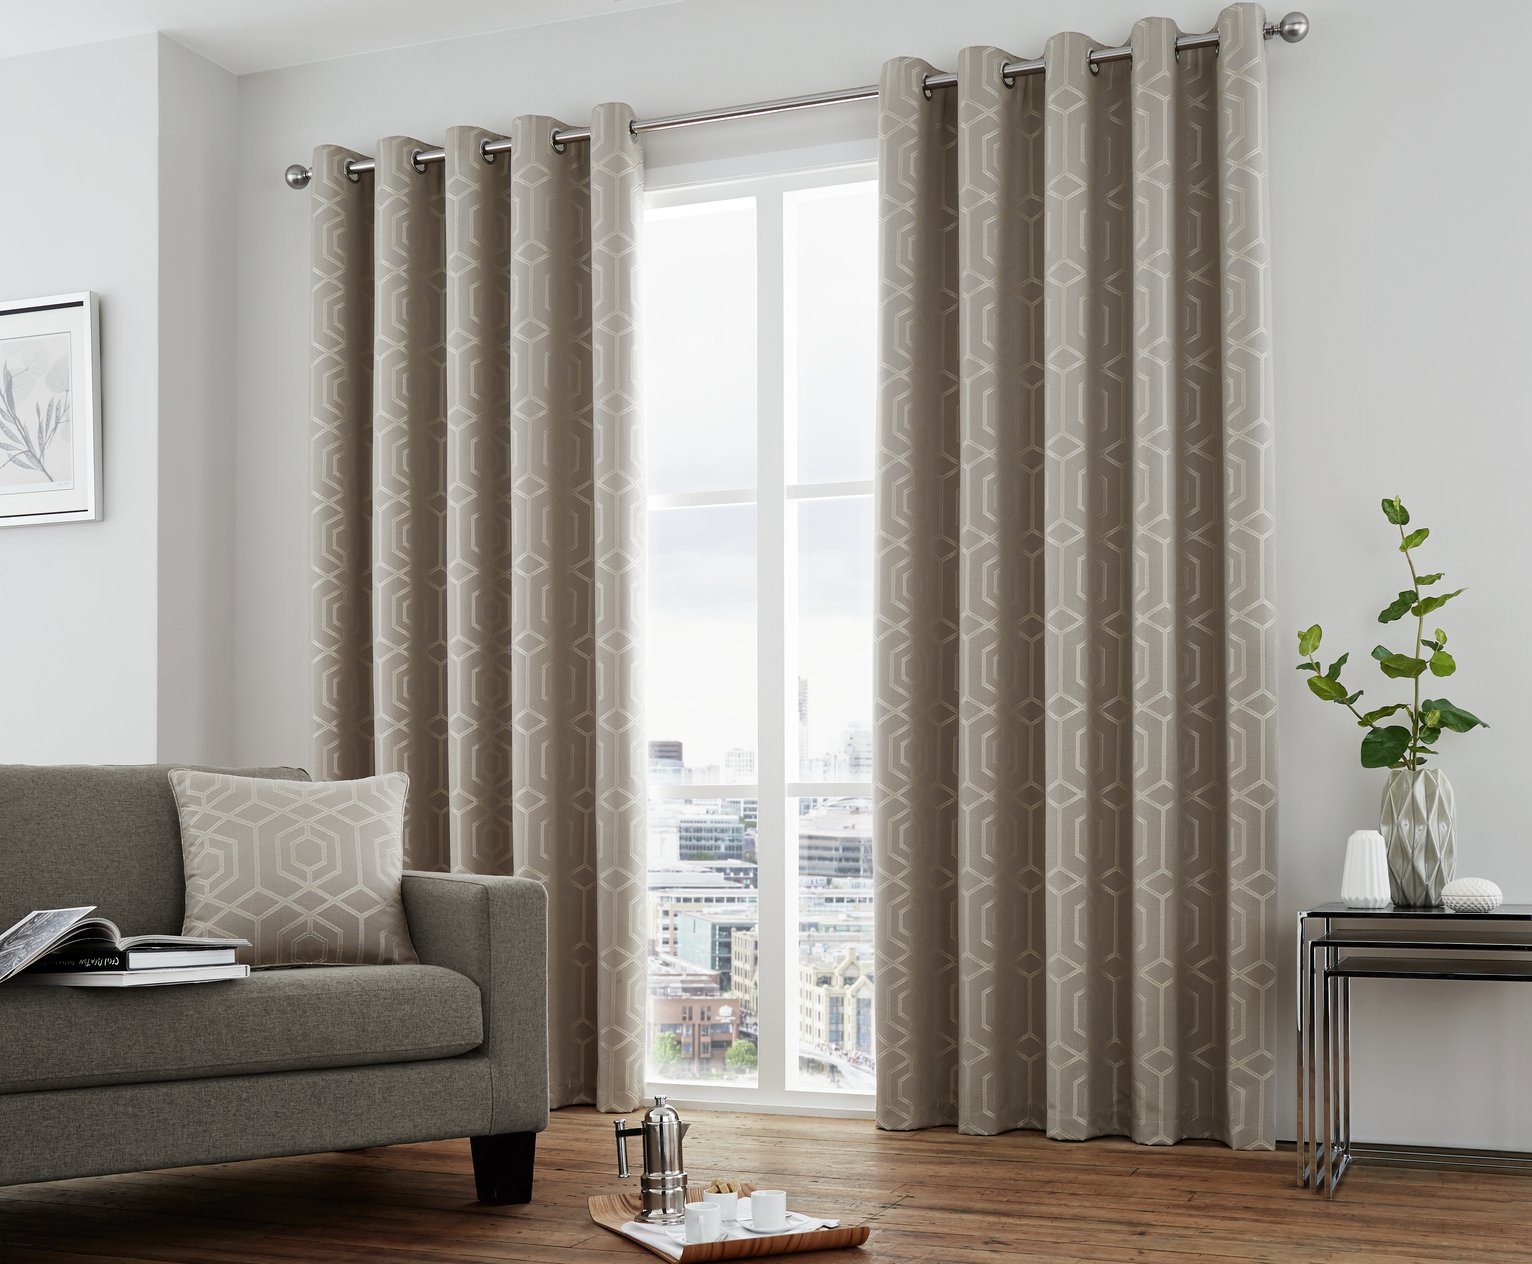 Image of Curtina Camberwell Eyelet Curtains - 168x183cm - Stone